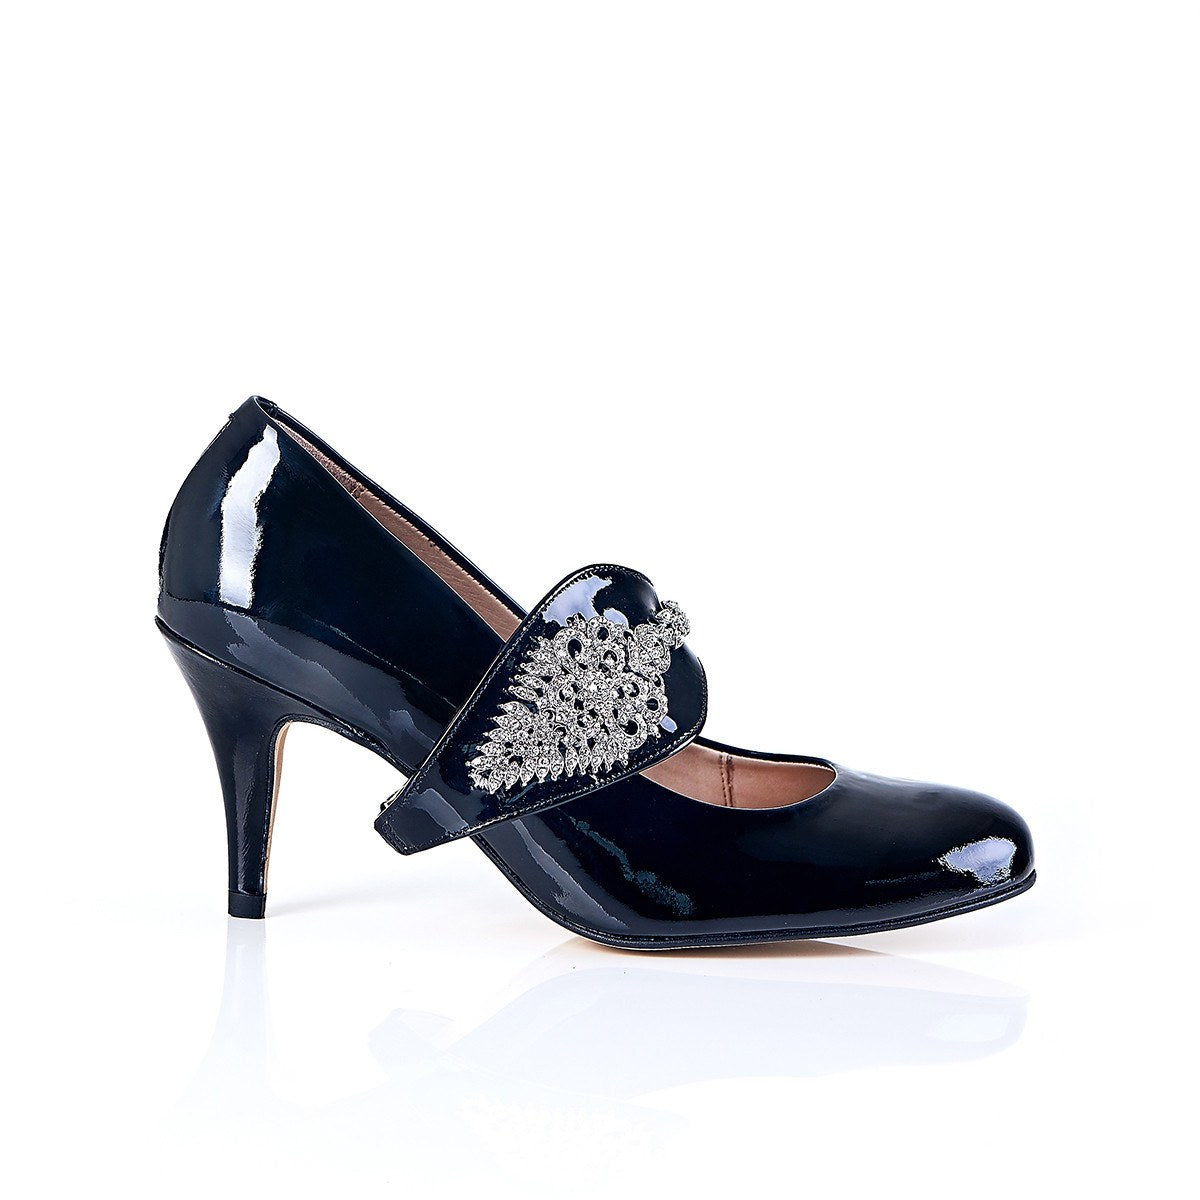 Dream Then Do in Silver Gems - 18 Hour Heels - Black Leather - Shoes by Shaherazad